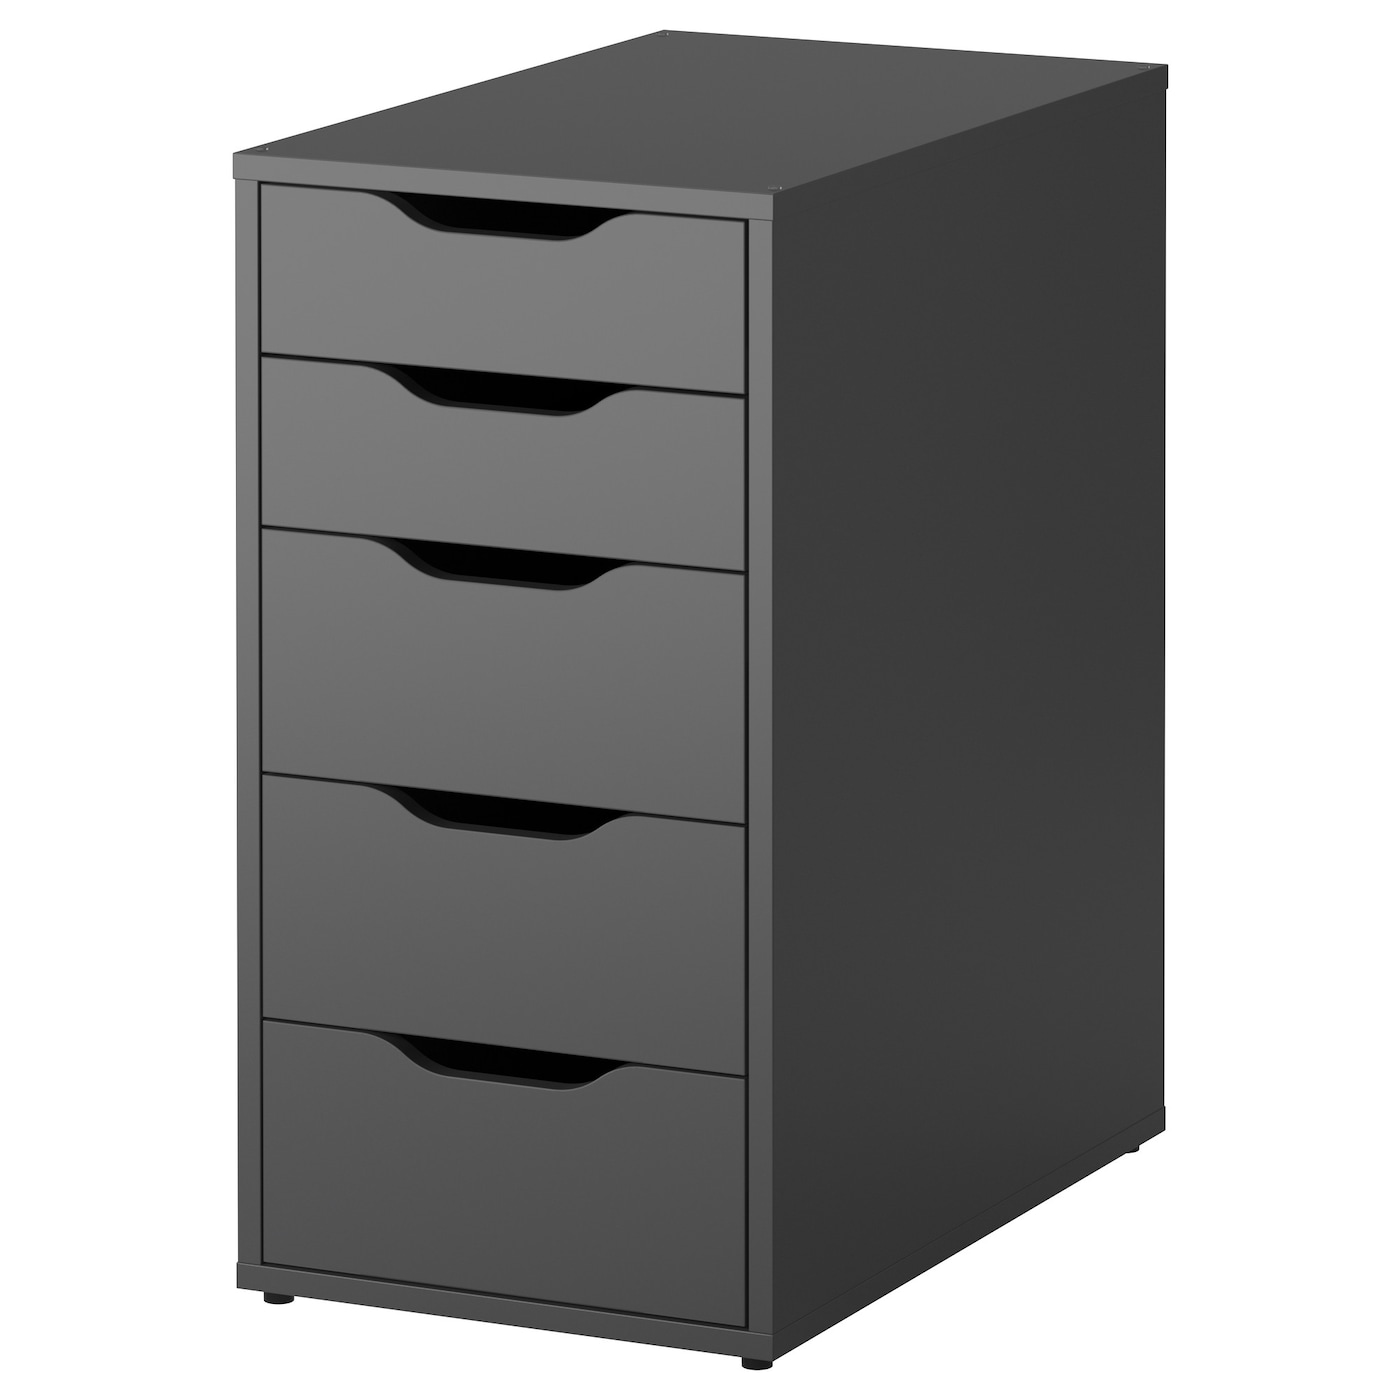 Ikea Alex Drawer Unit Stops Prevent The Drawers From Being Pulled Out Too Far